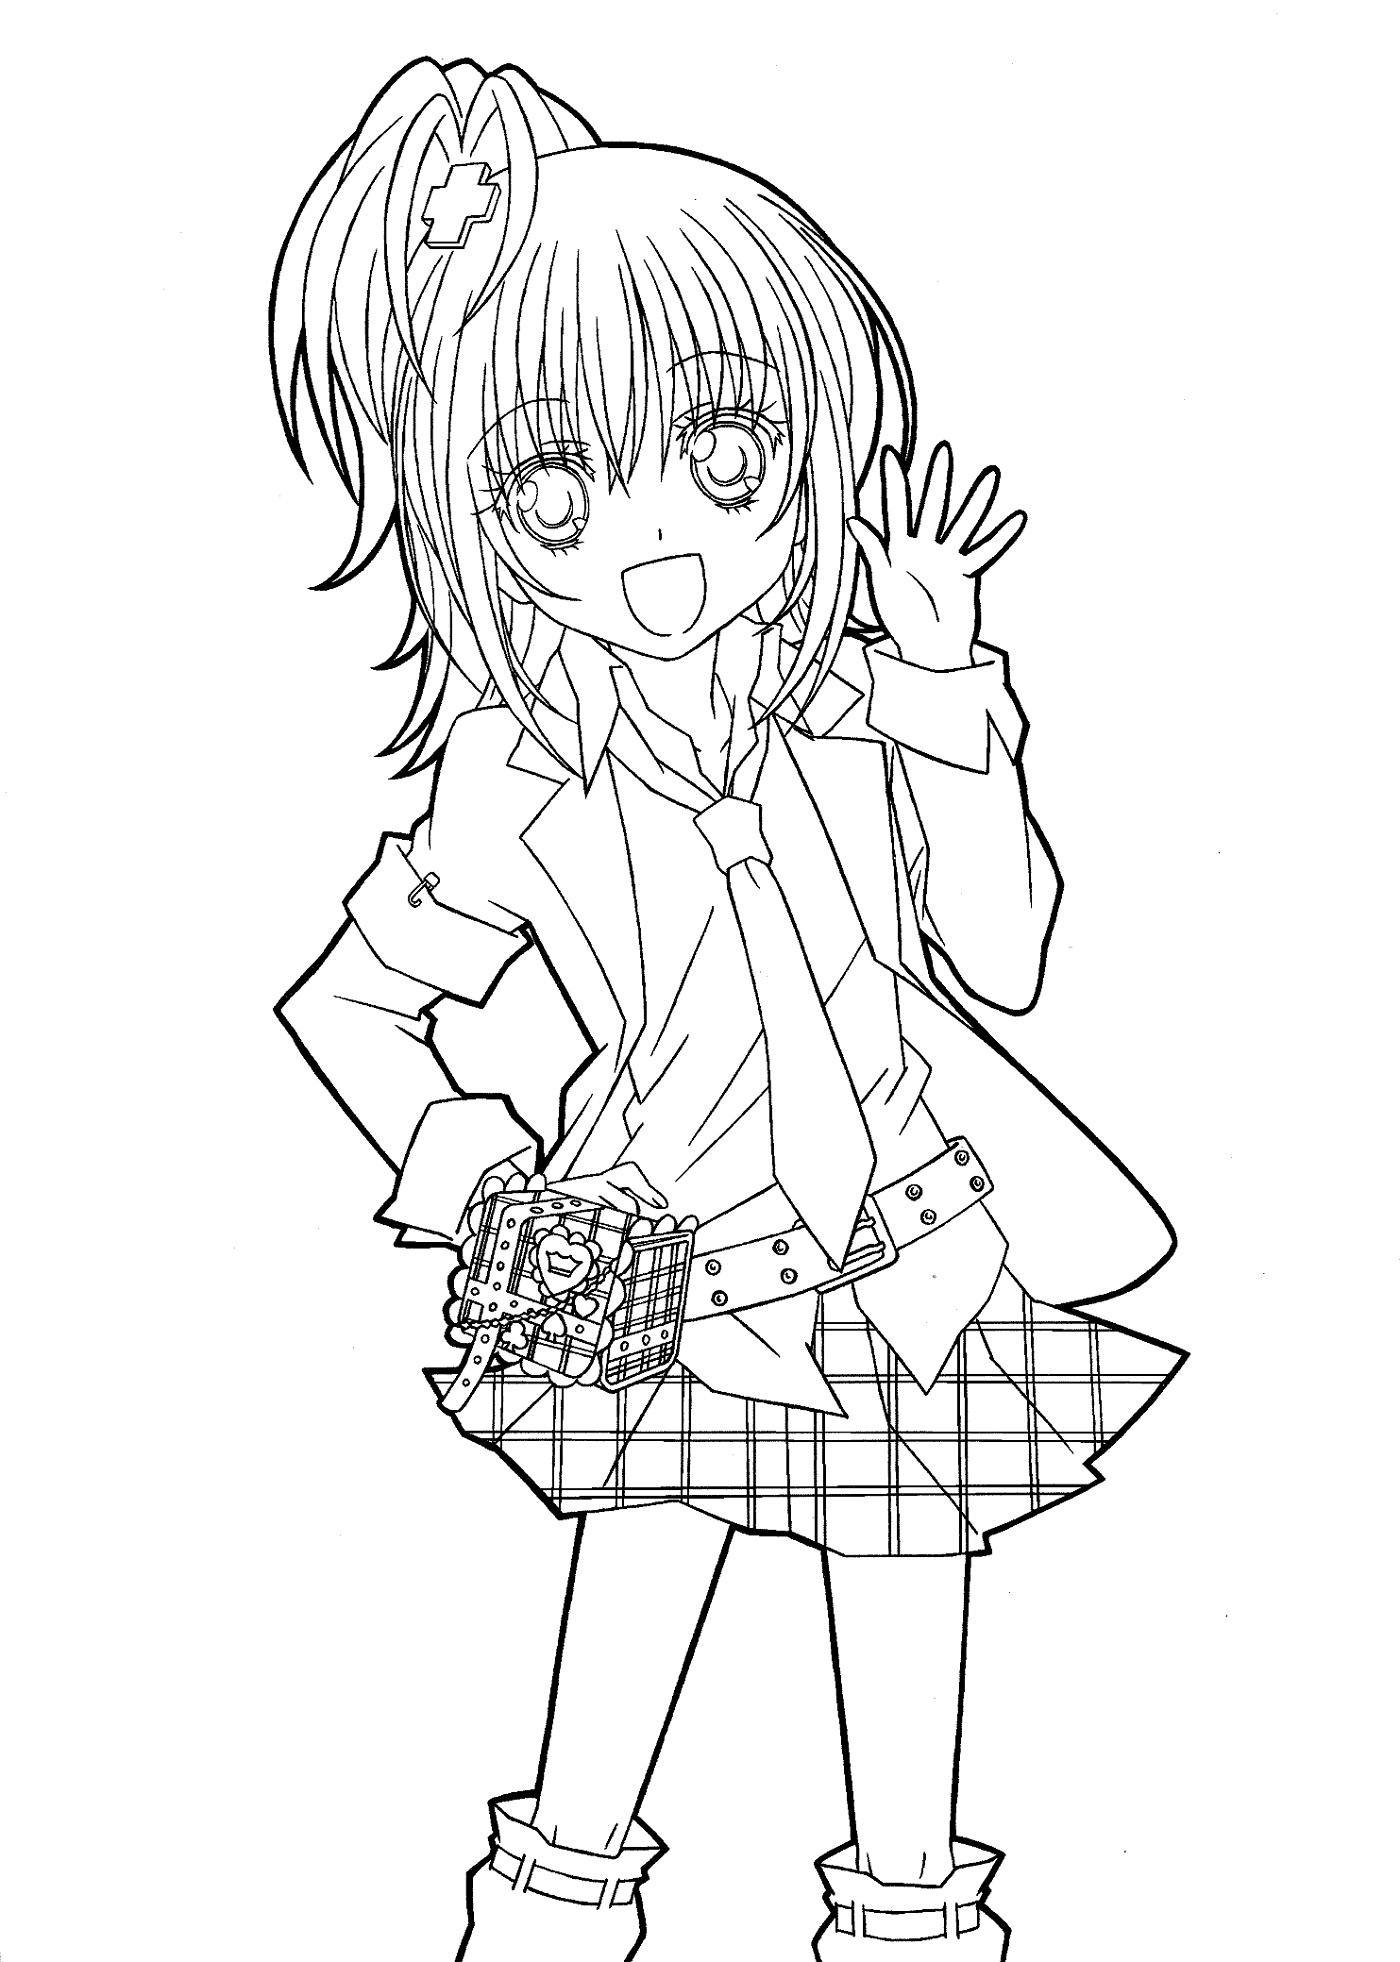 coloring pages anime 20 free printable anime coloring pages everfreecoloringcom coloring pages anime